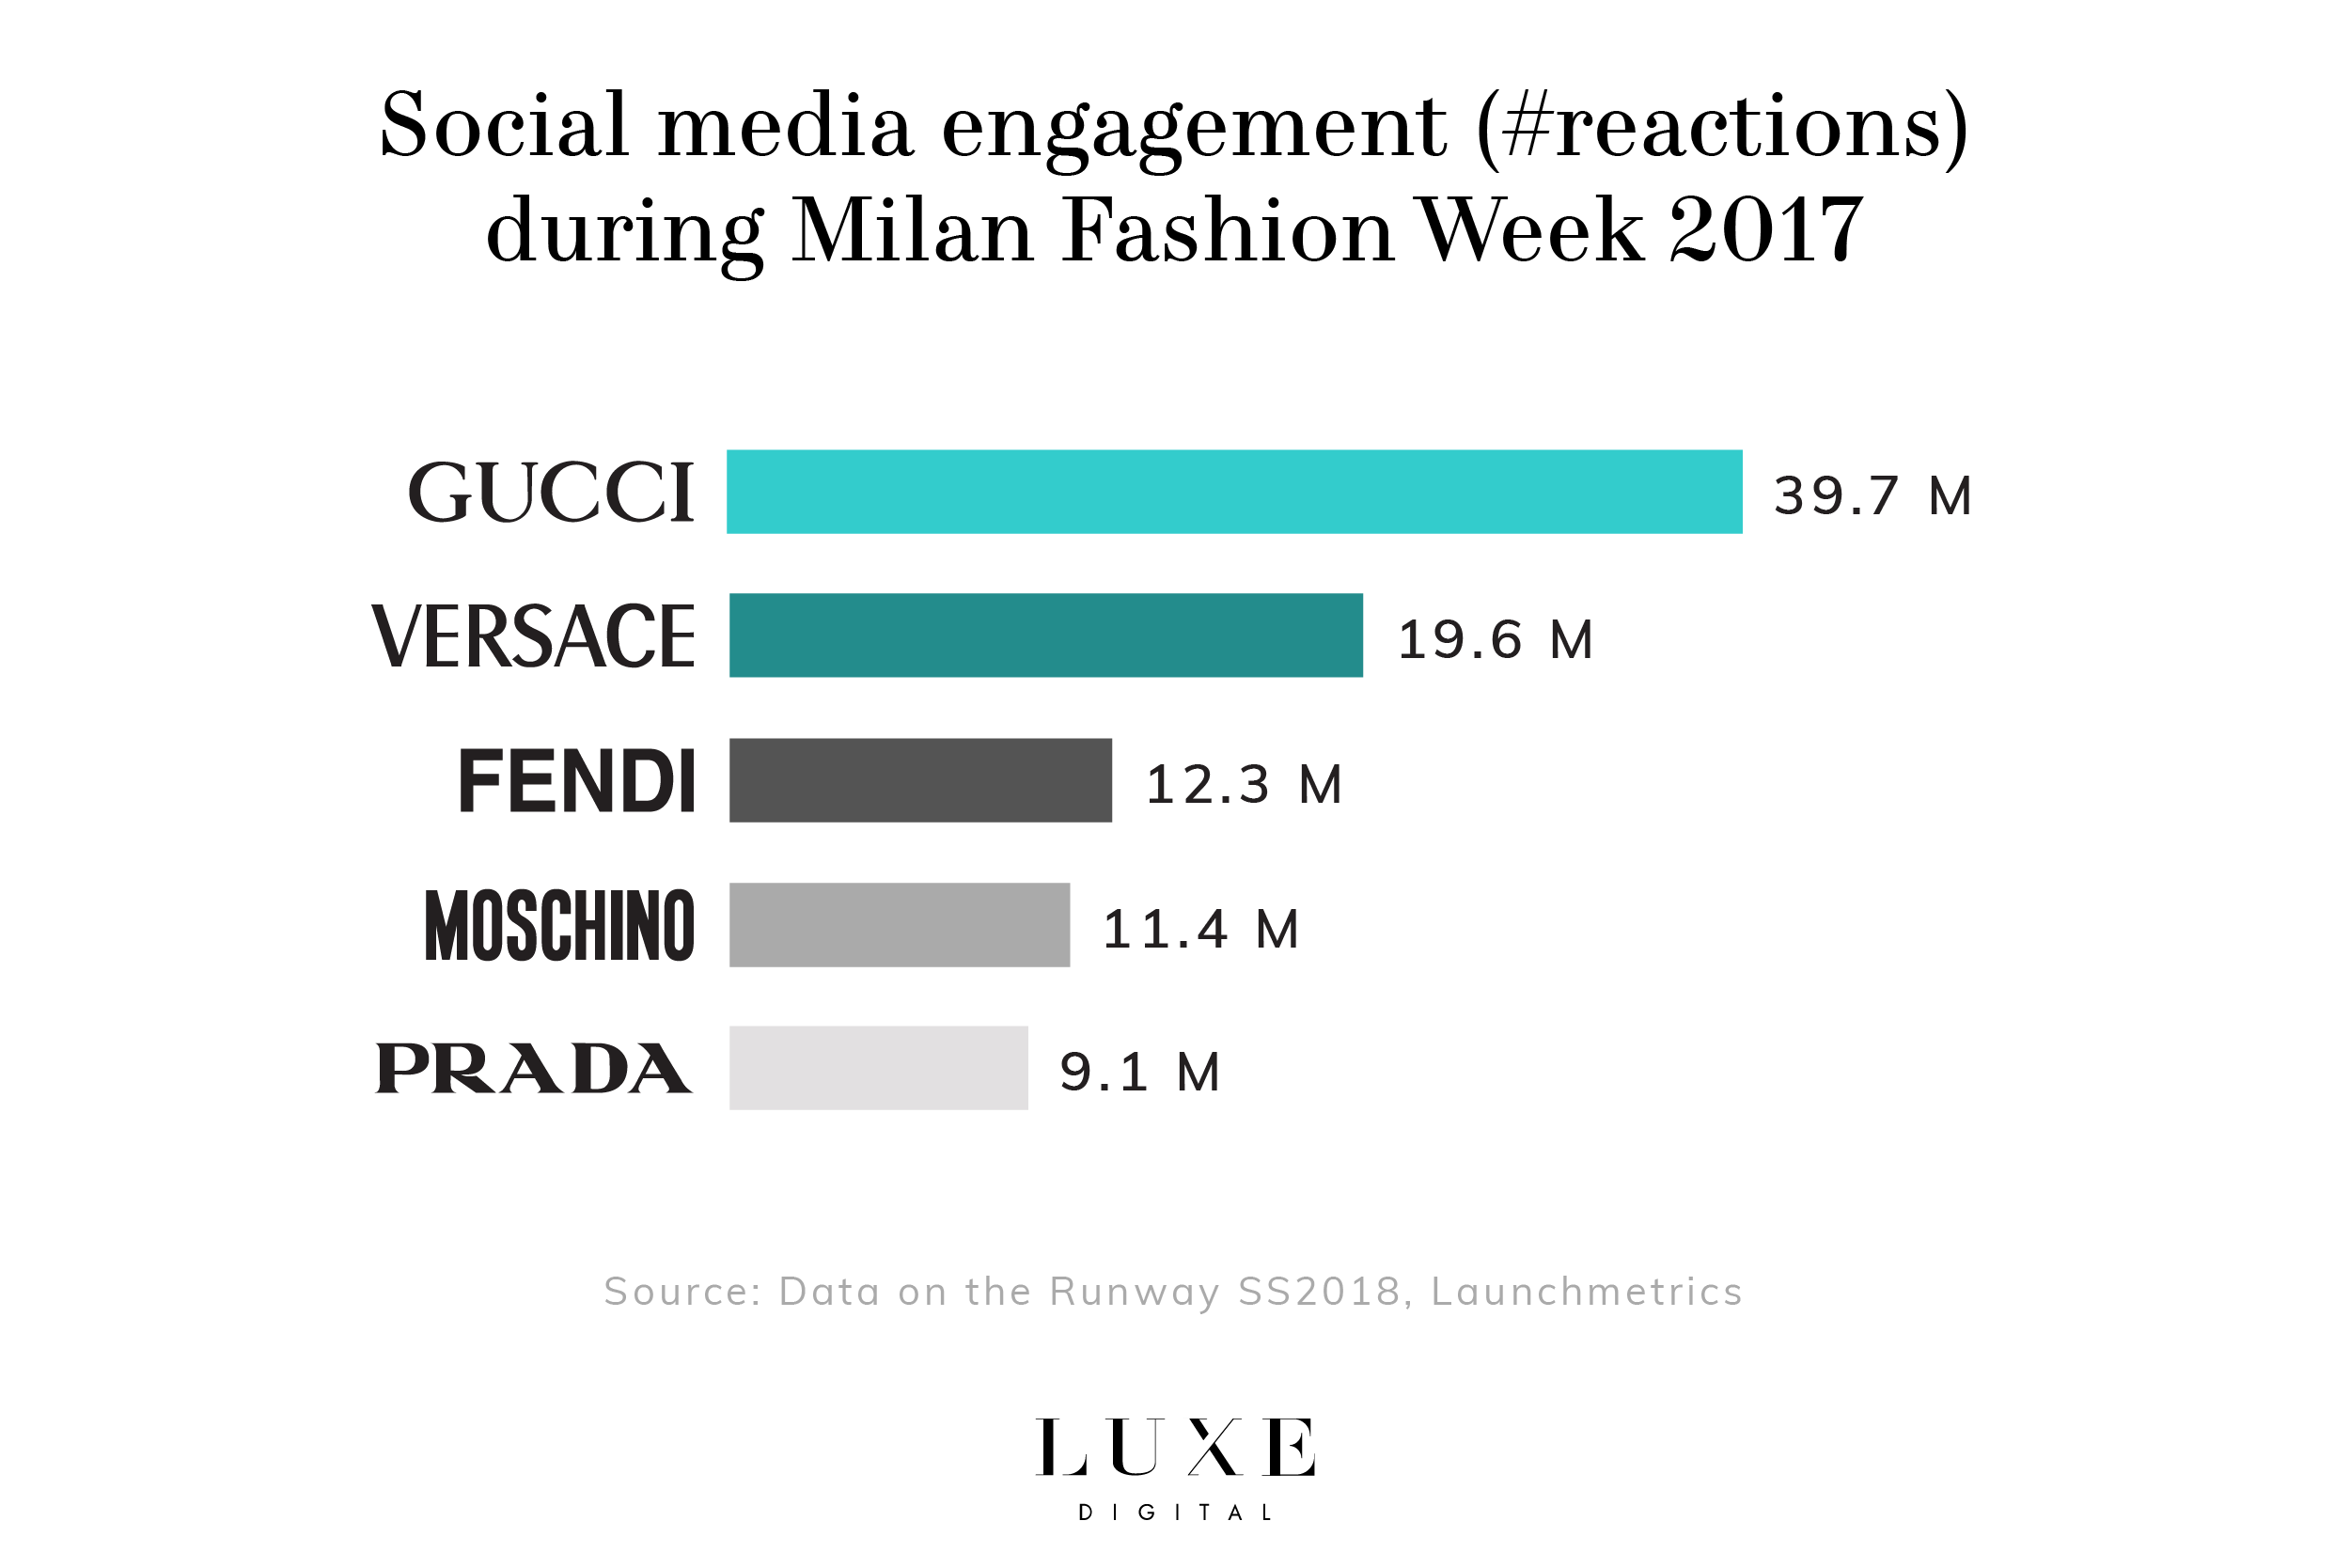 Social media engagement gucci milan fashion week luxe digital luxury fashion millennials